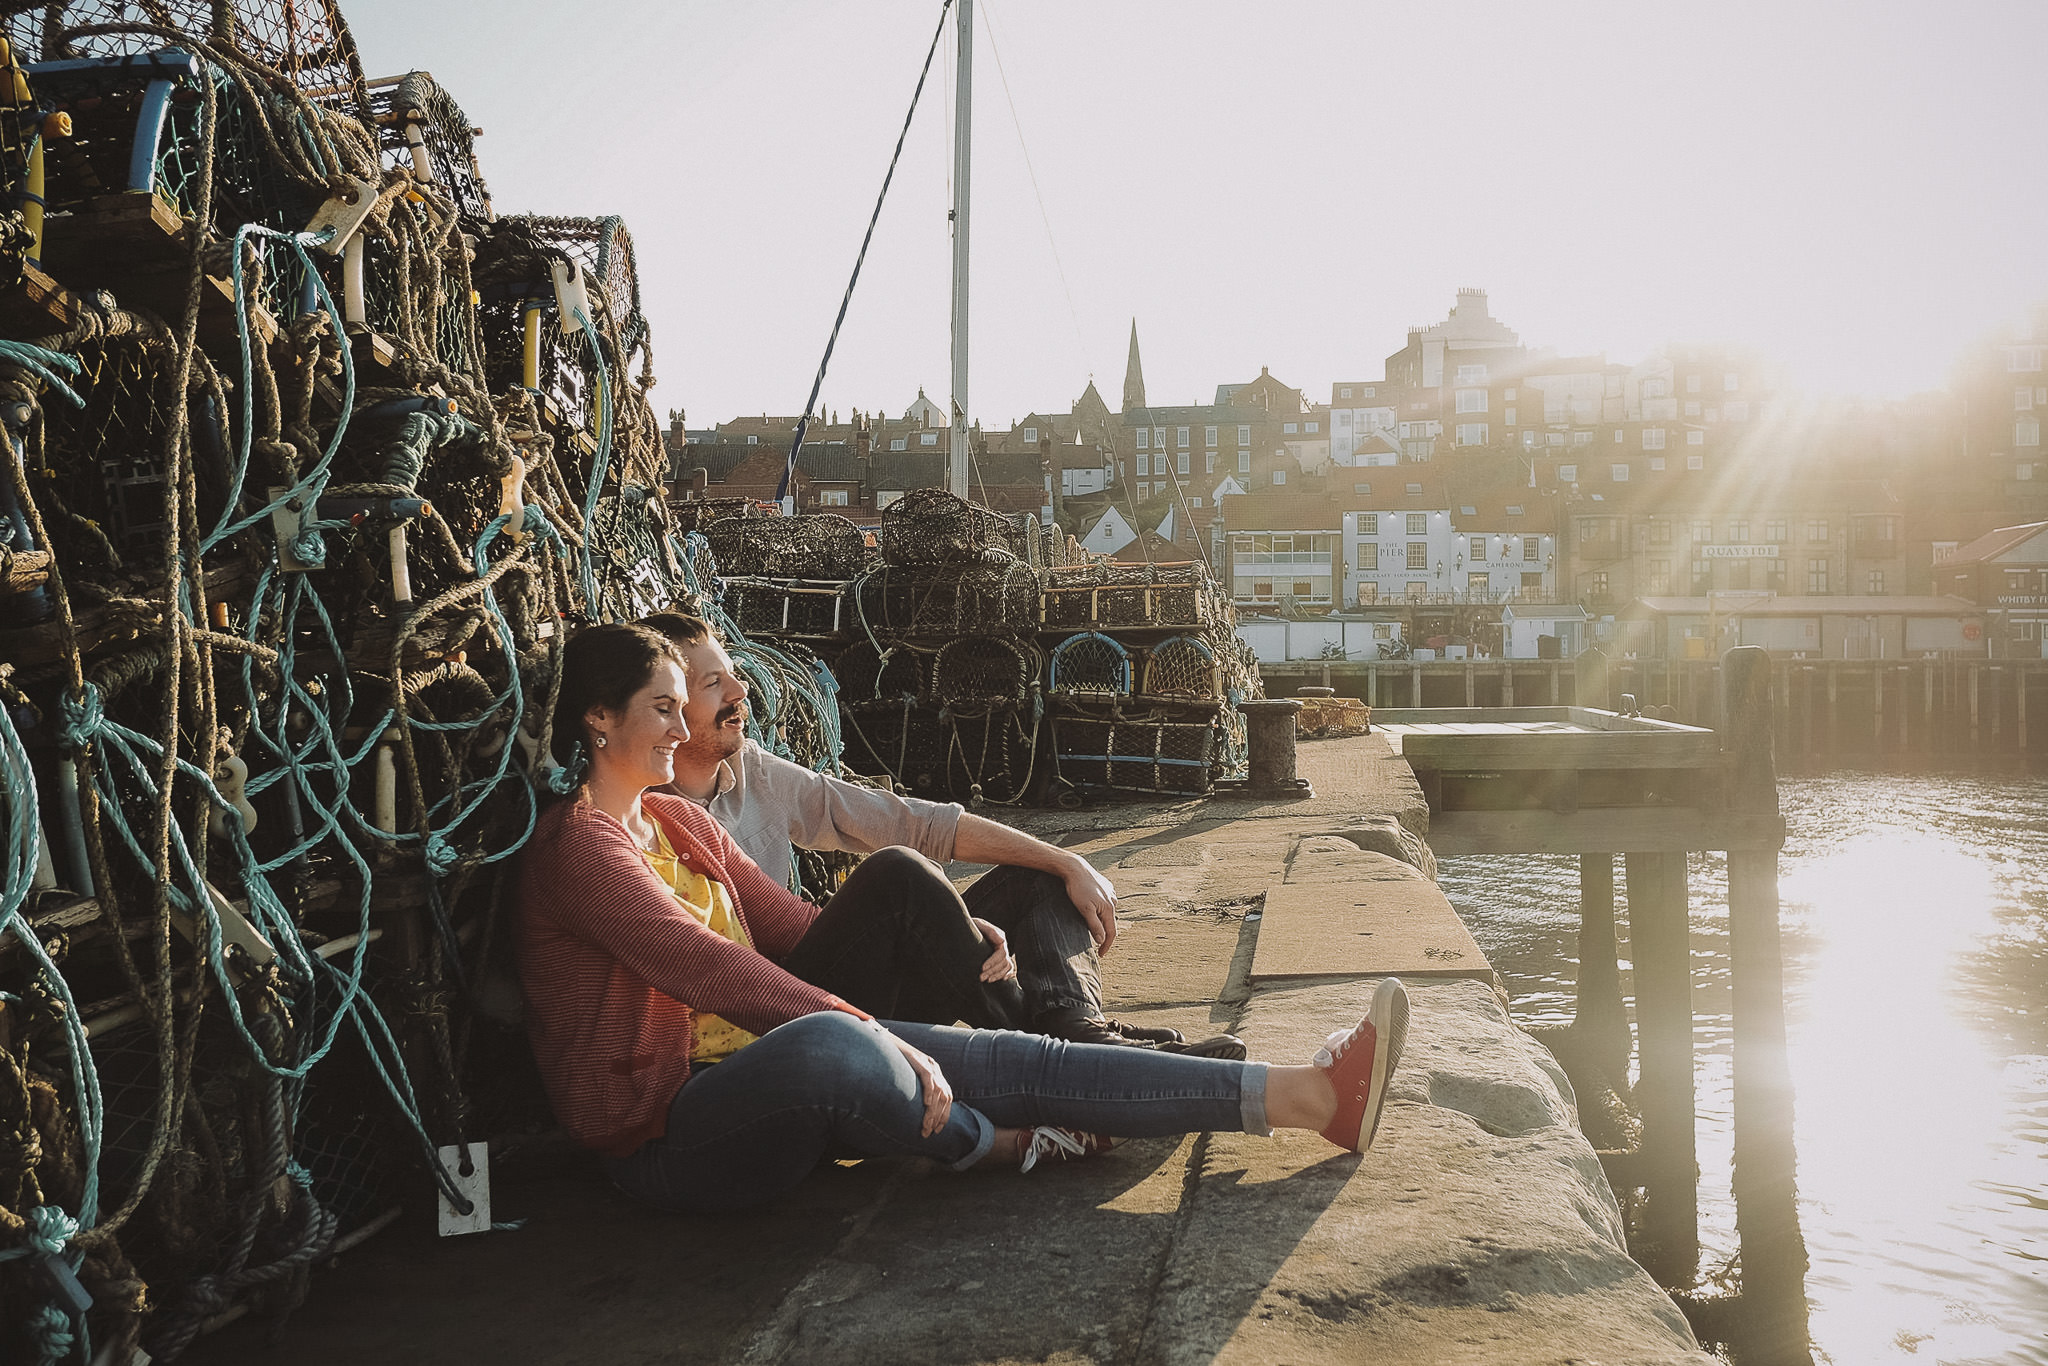 Katy and Tom sit amongst the fishing nets at Whitby Habour with the sun shining down in Yorkshire on a pre-wedding engagement shoot by Barry Forshaw